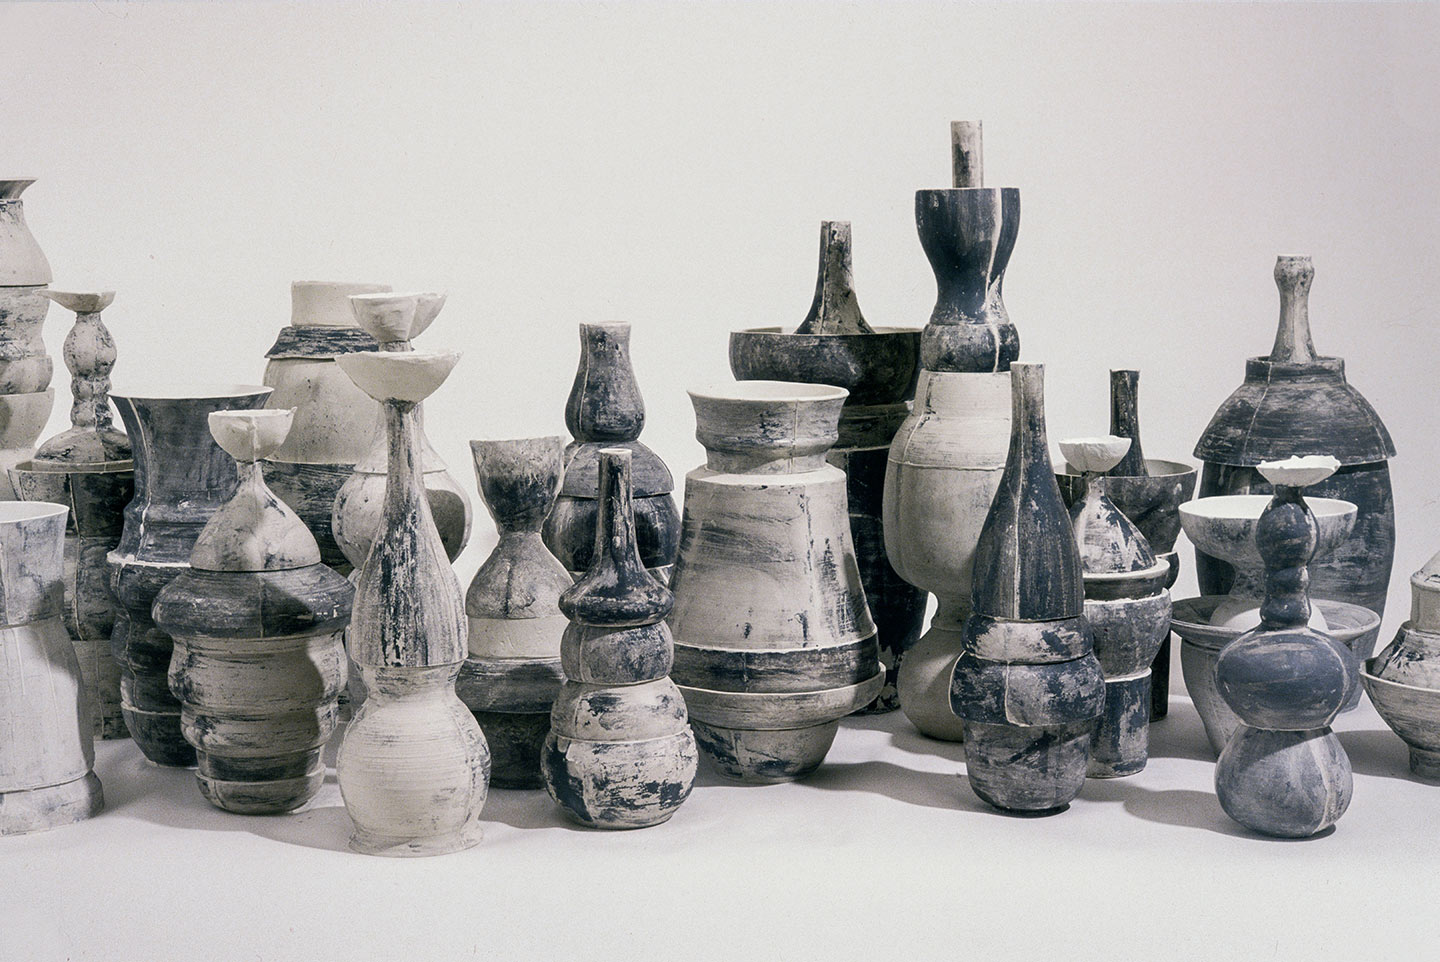 detail,  Skyline  , 2002. c  ast porcelain, ceramic pigments. a  pprox. 13.5 feet x 13 inches.